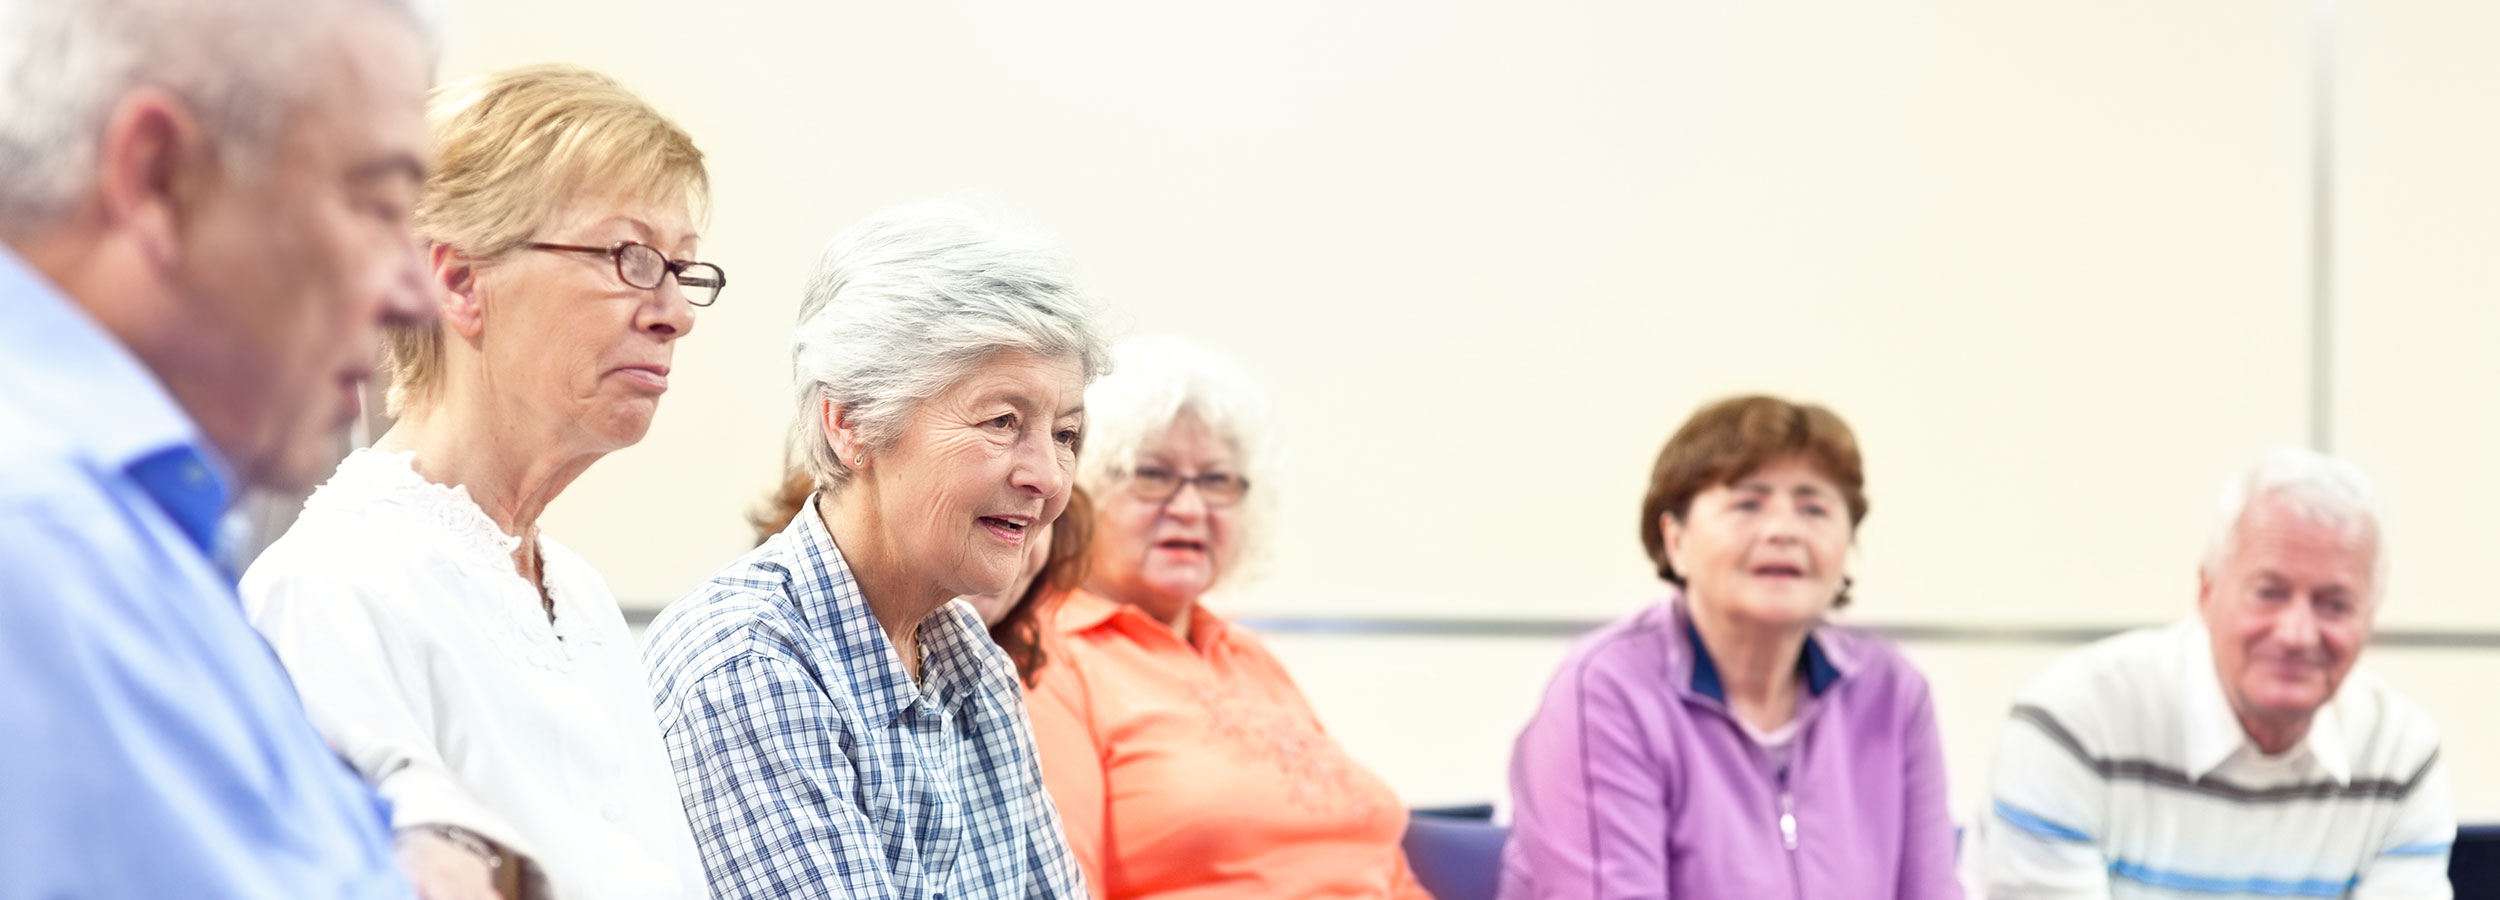 Group of caregivers attending a support group session